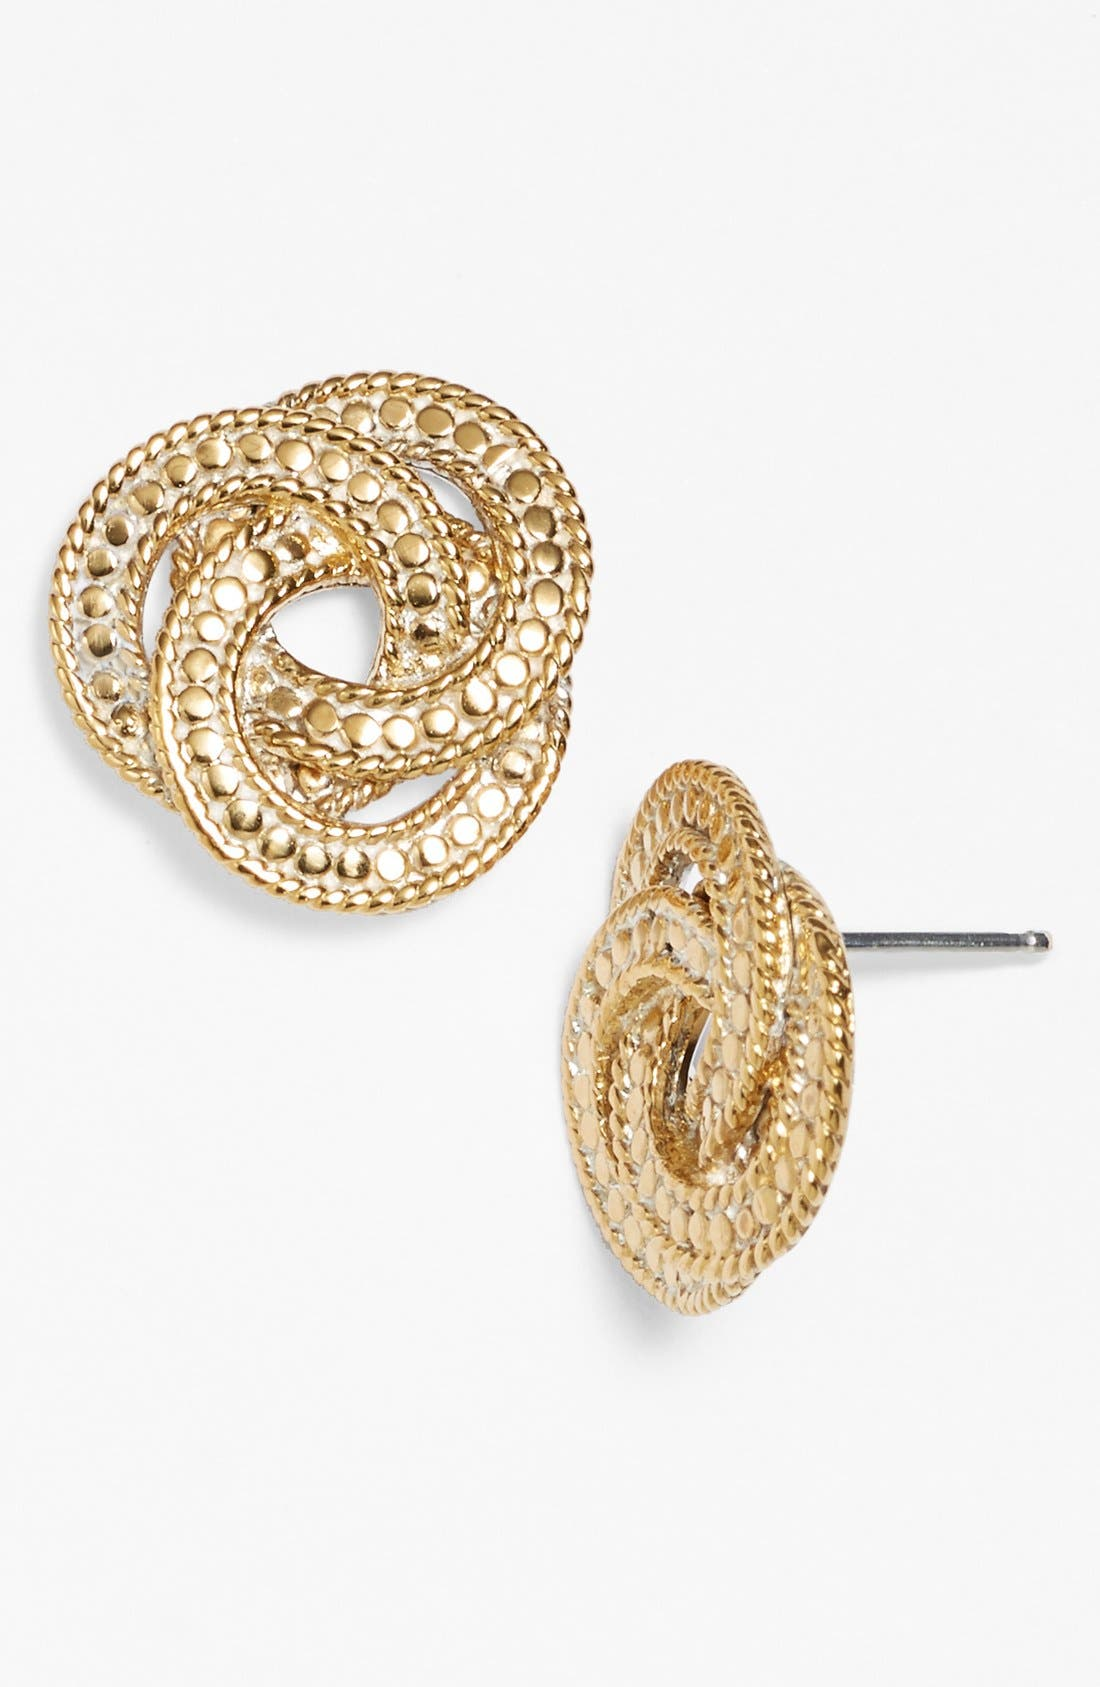 Main Image - Anna Beck 'Timor' Twisted Stud Earrings